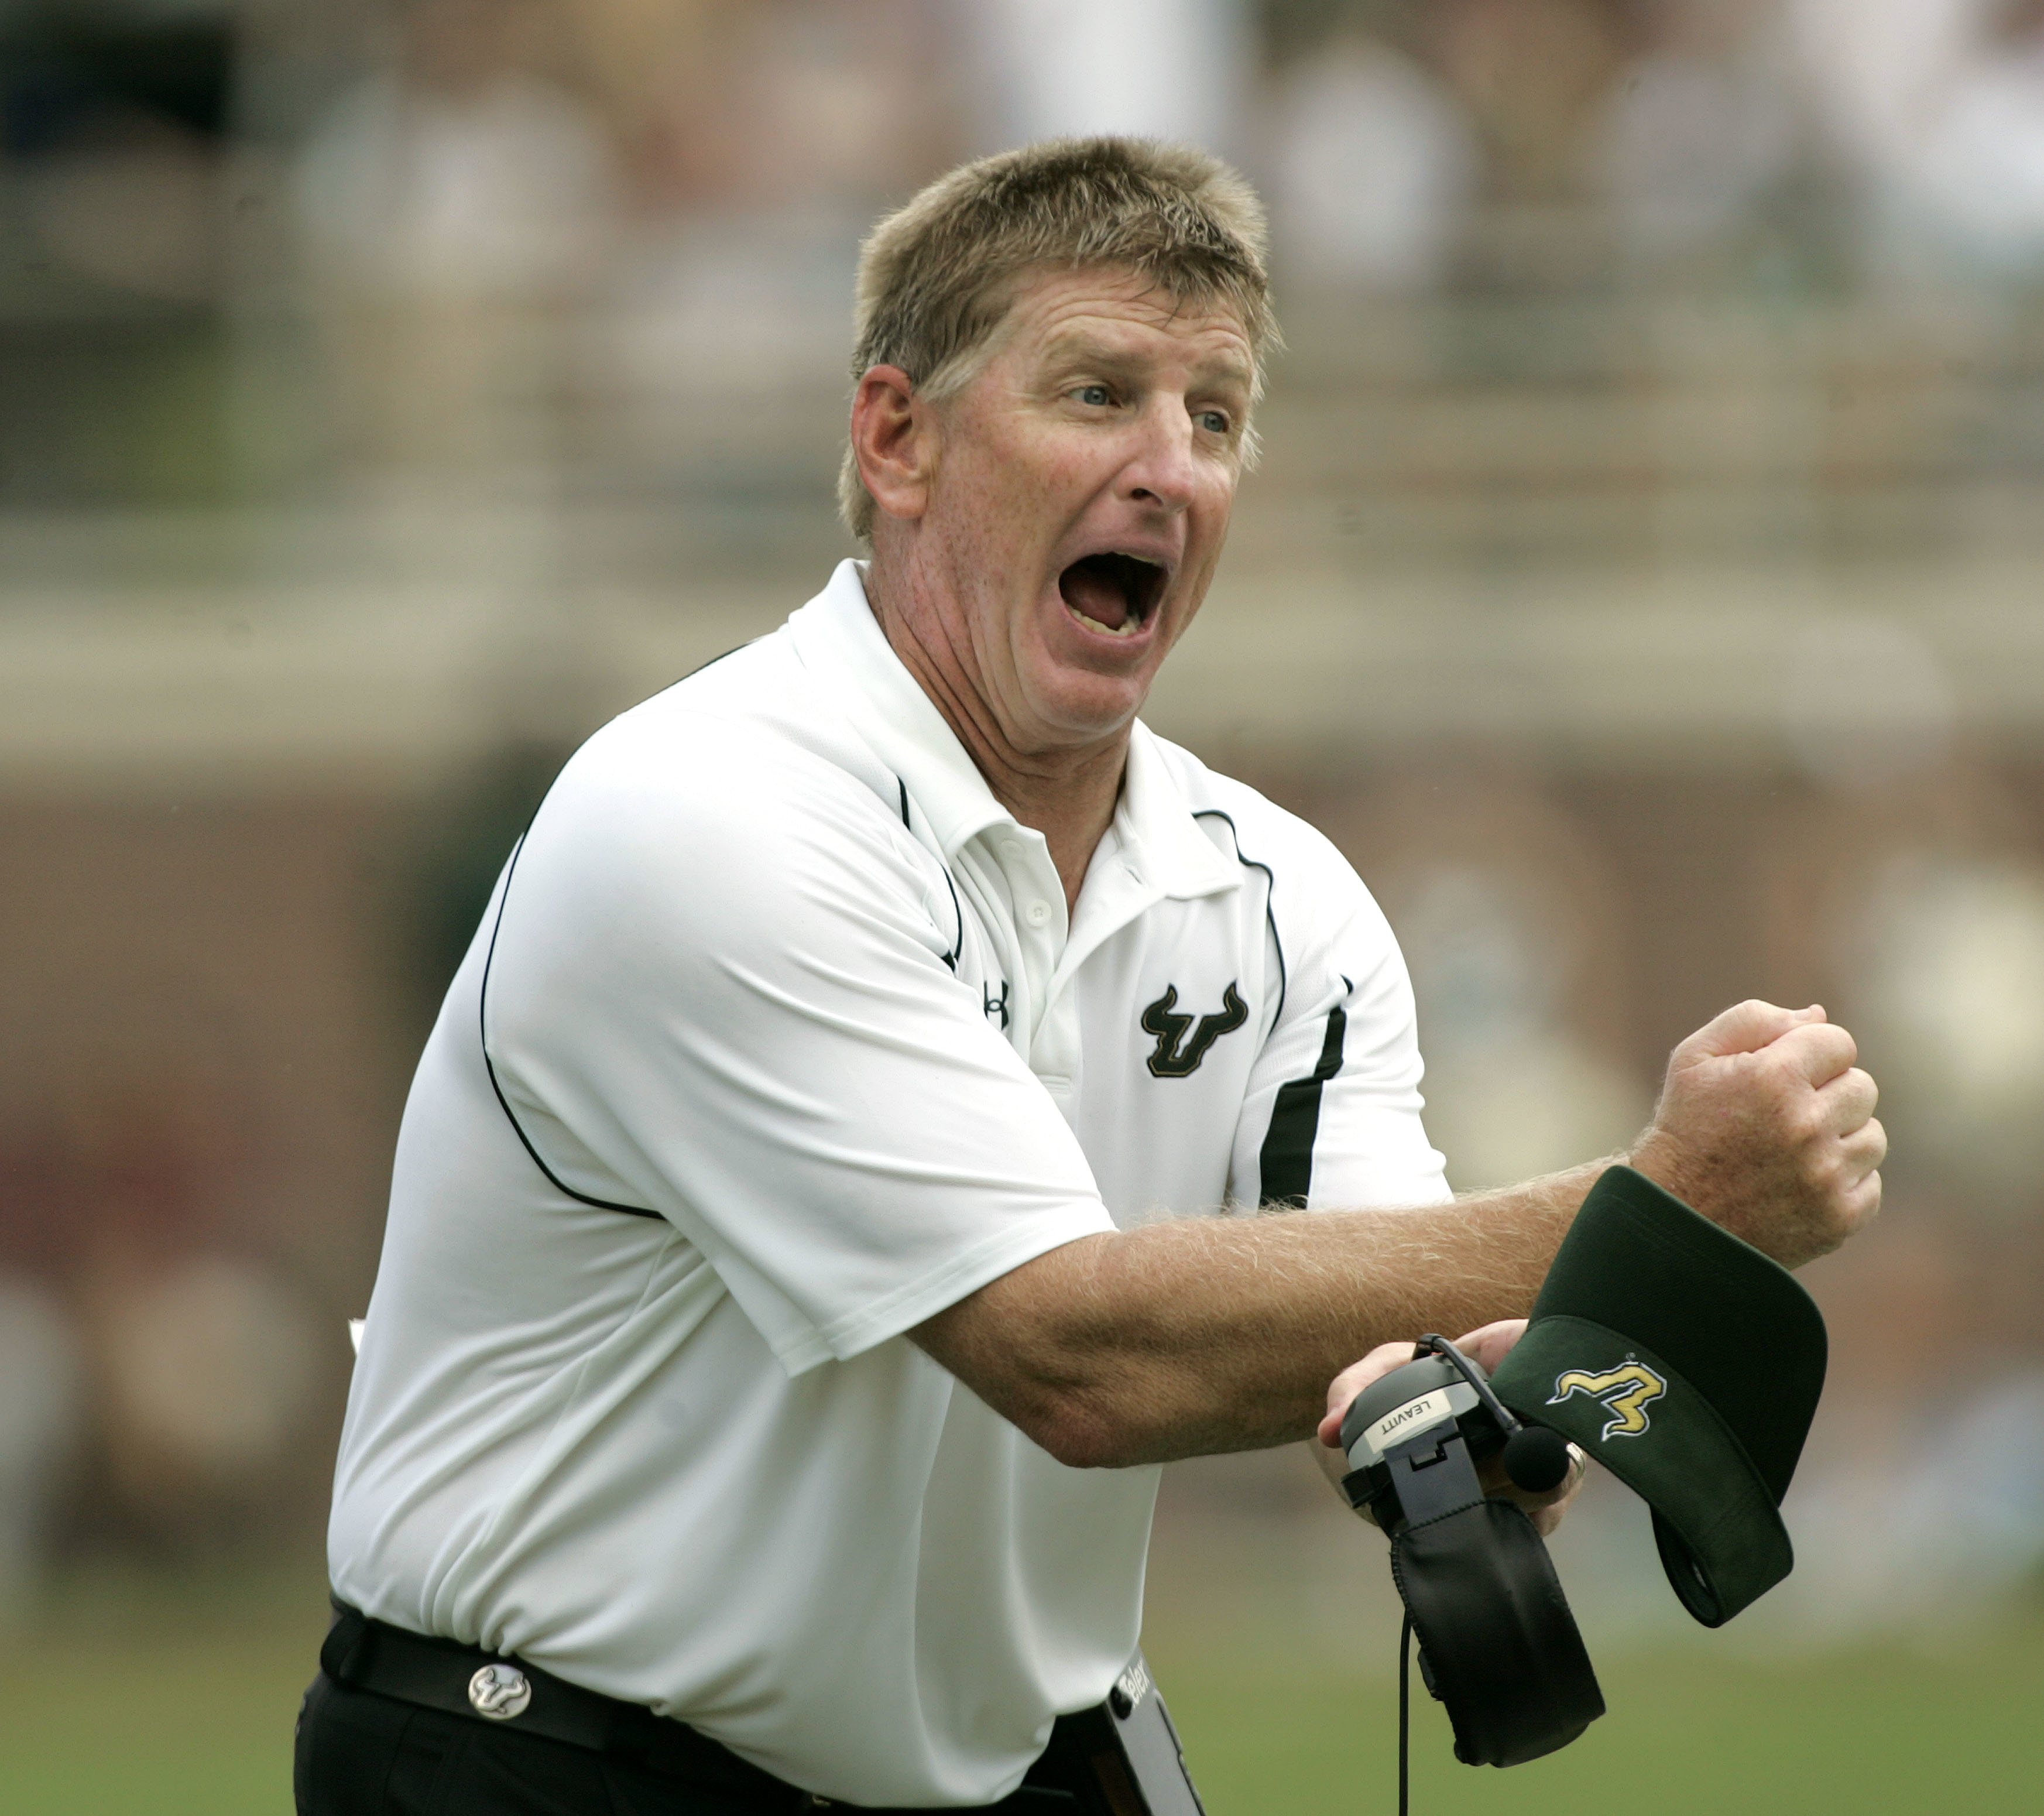 FILE - This Sept. 26, 2009, file photo shows University of South Florida head coach Jim Leavitt arguing an officials call during an NCAA college football game against Florida State, in Tallahassee, Fla. Leavitt is joining new head coach Willie Taggarts st